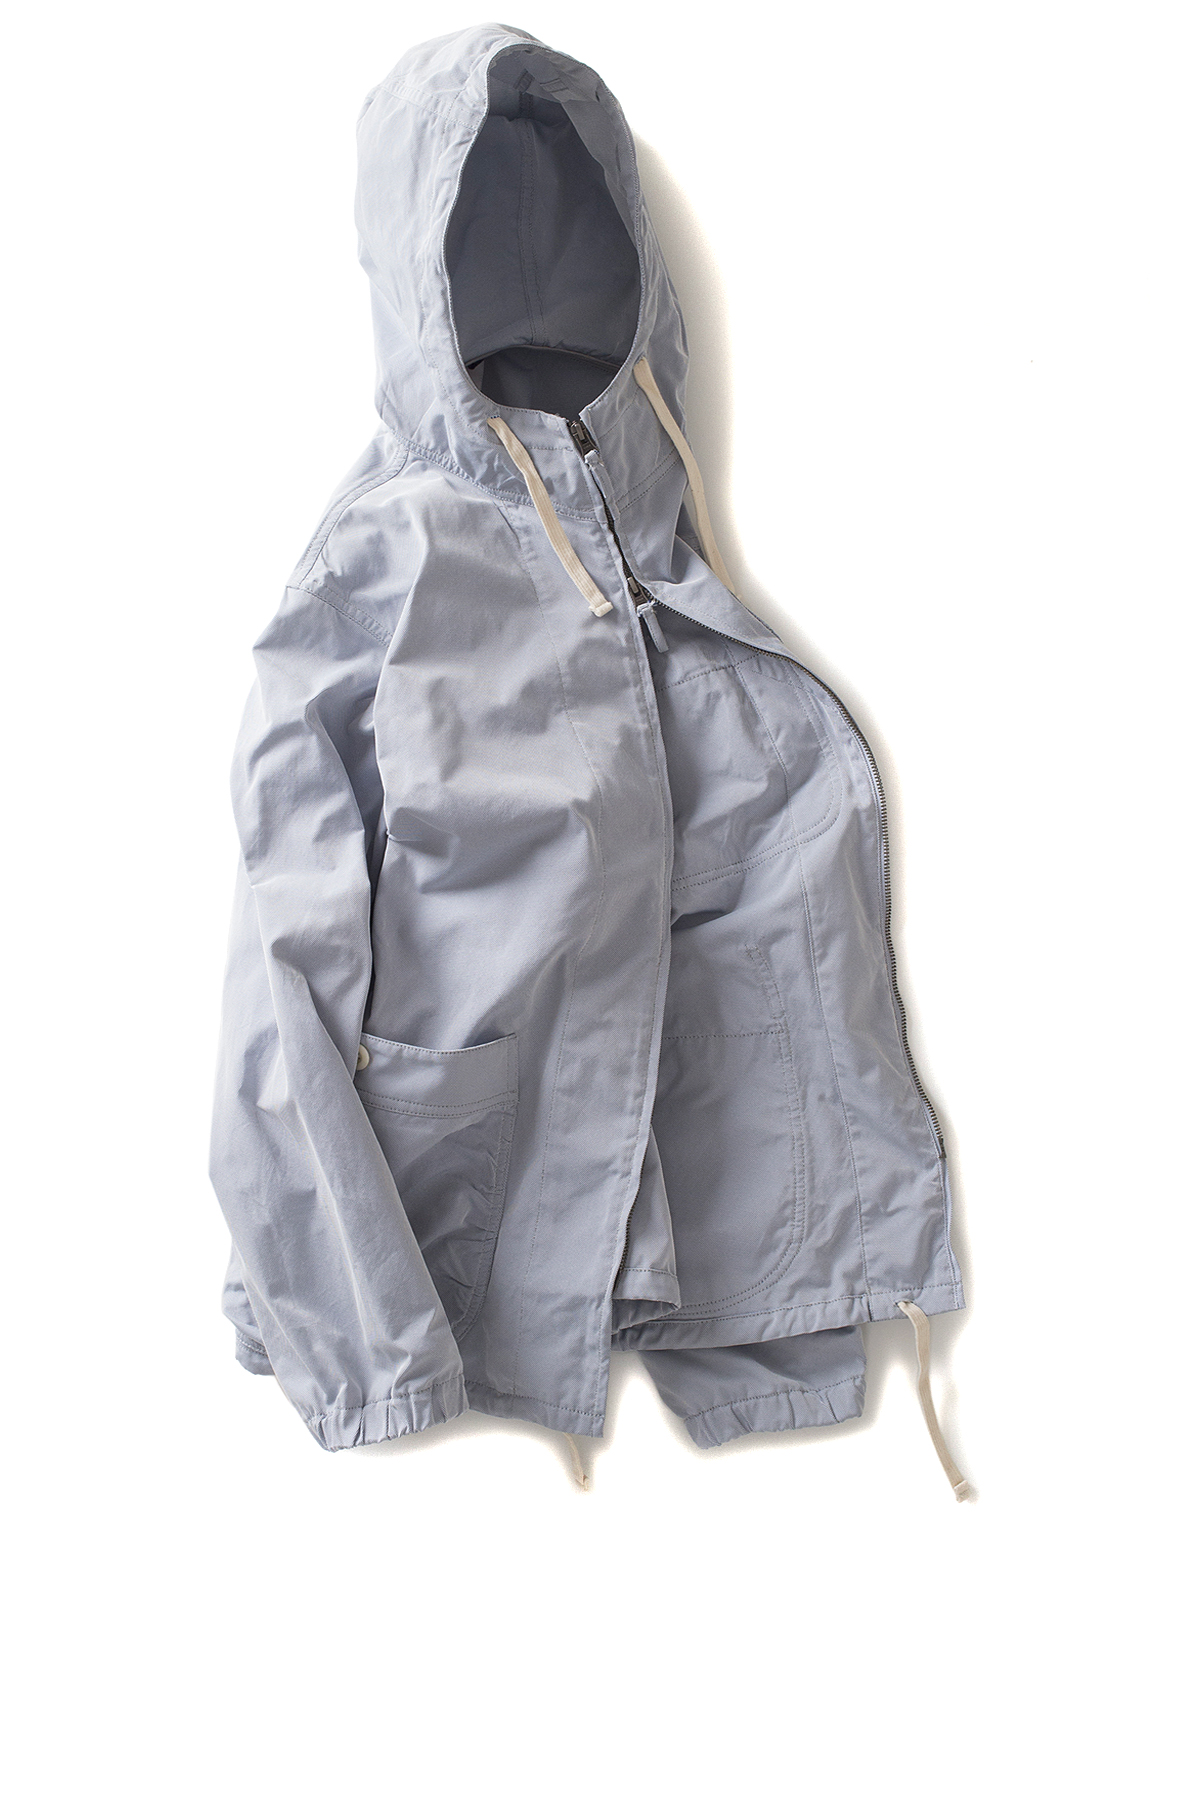 Ts(s) : Gathered Round Pocket Zip-up Parka (Gray Blue)